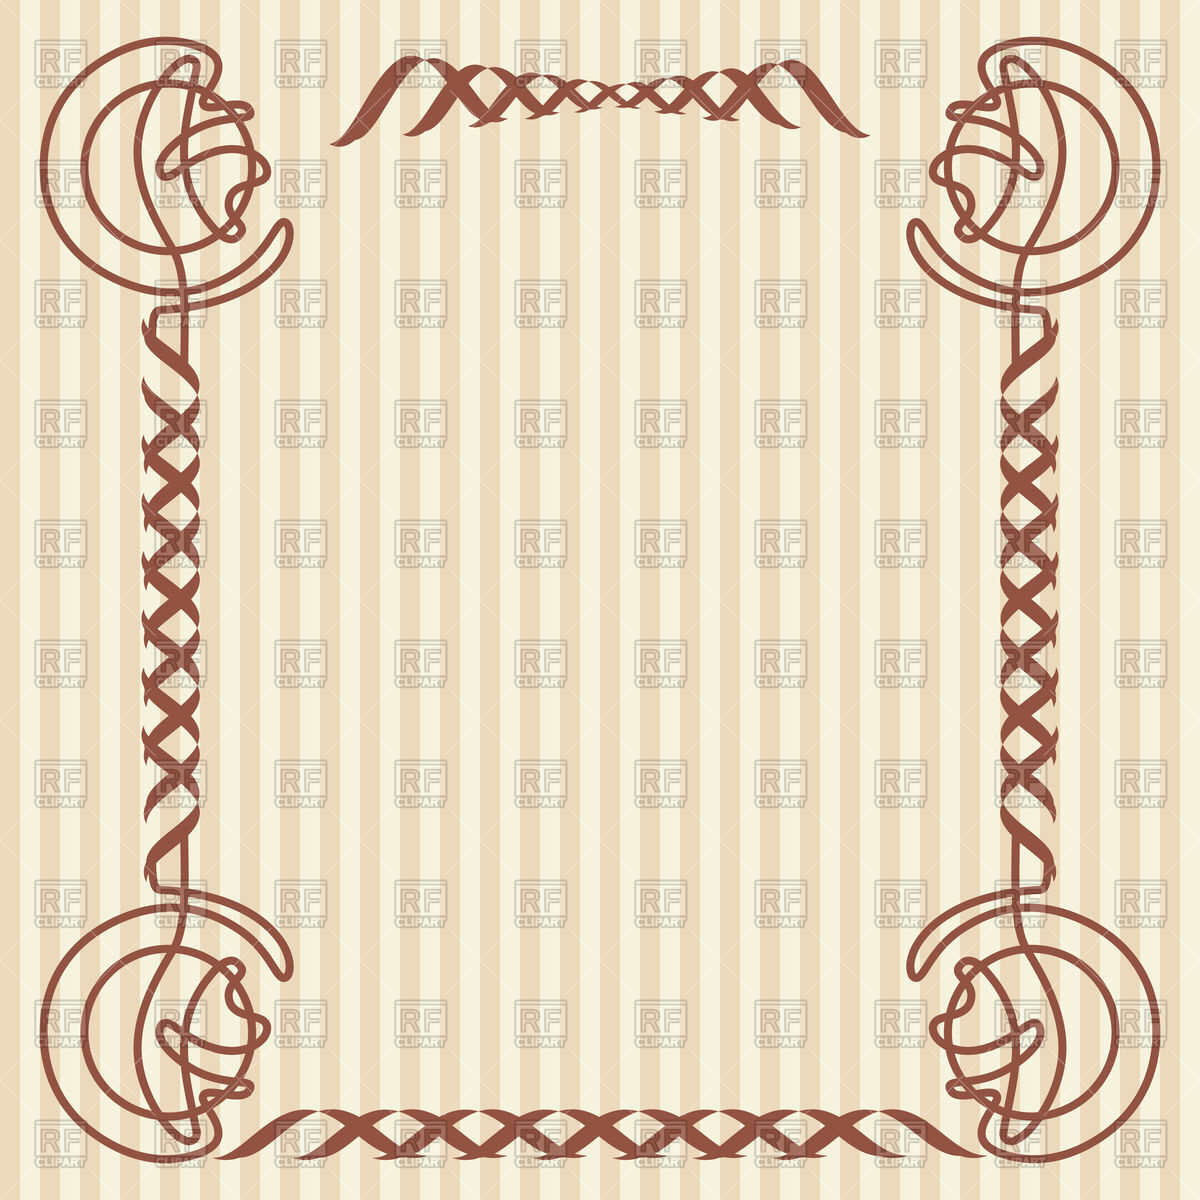 1200x1200 Square Decorative Frame In Art Nouveau Style Vector Image Vector